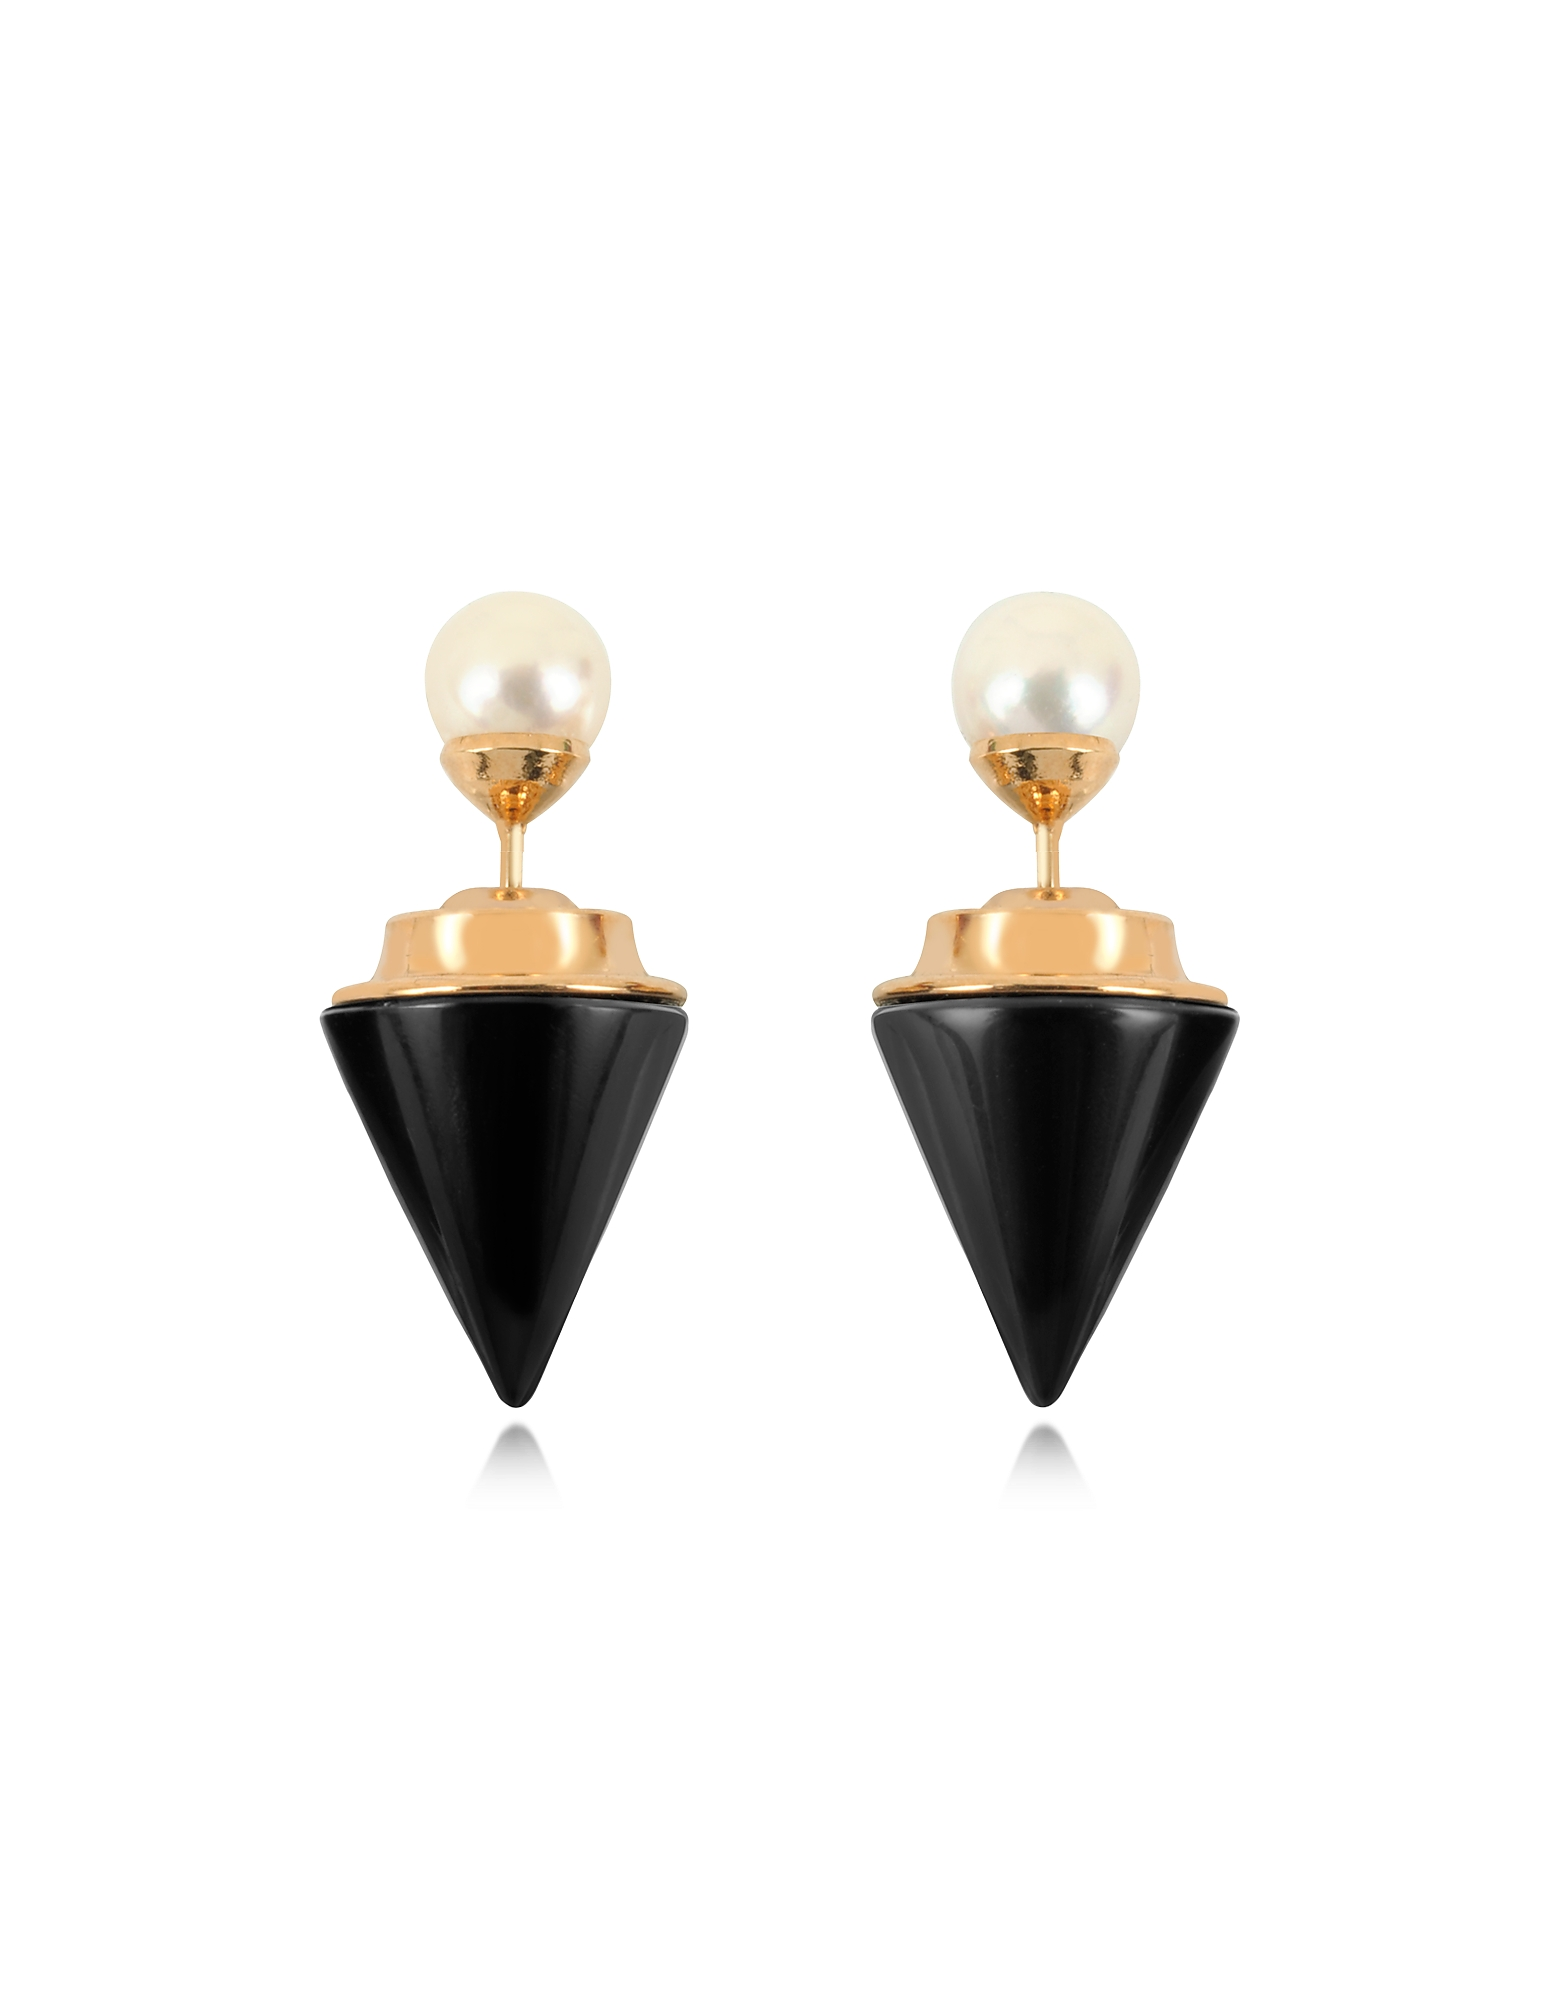 Vita Fede Earrings, Double Titan Stone Pearl Earrings w/Akoya Pearls